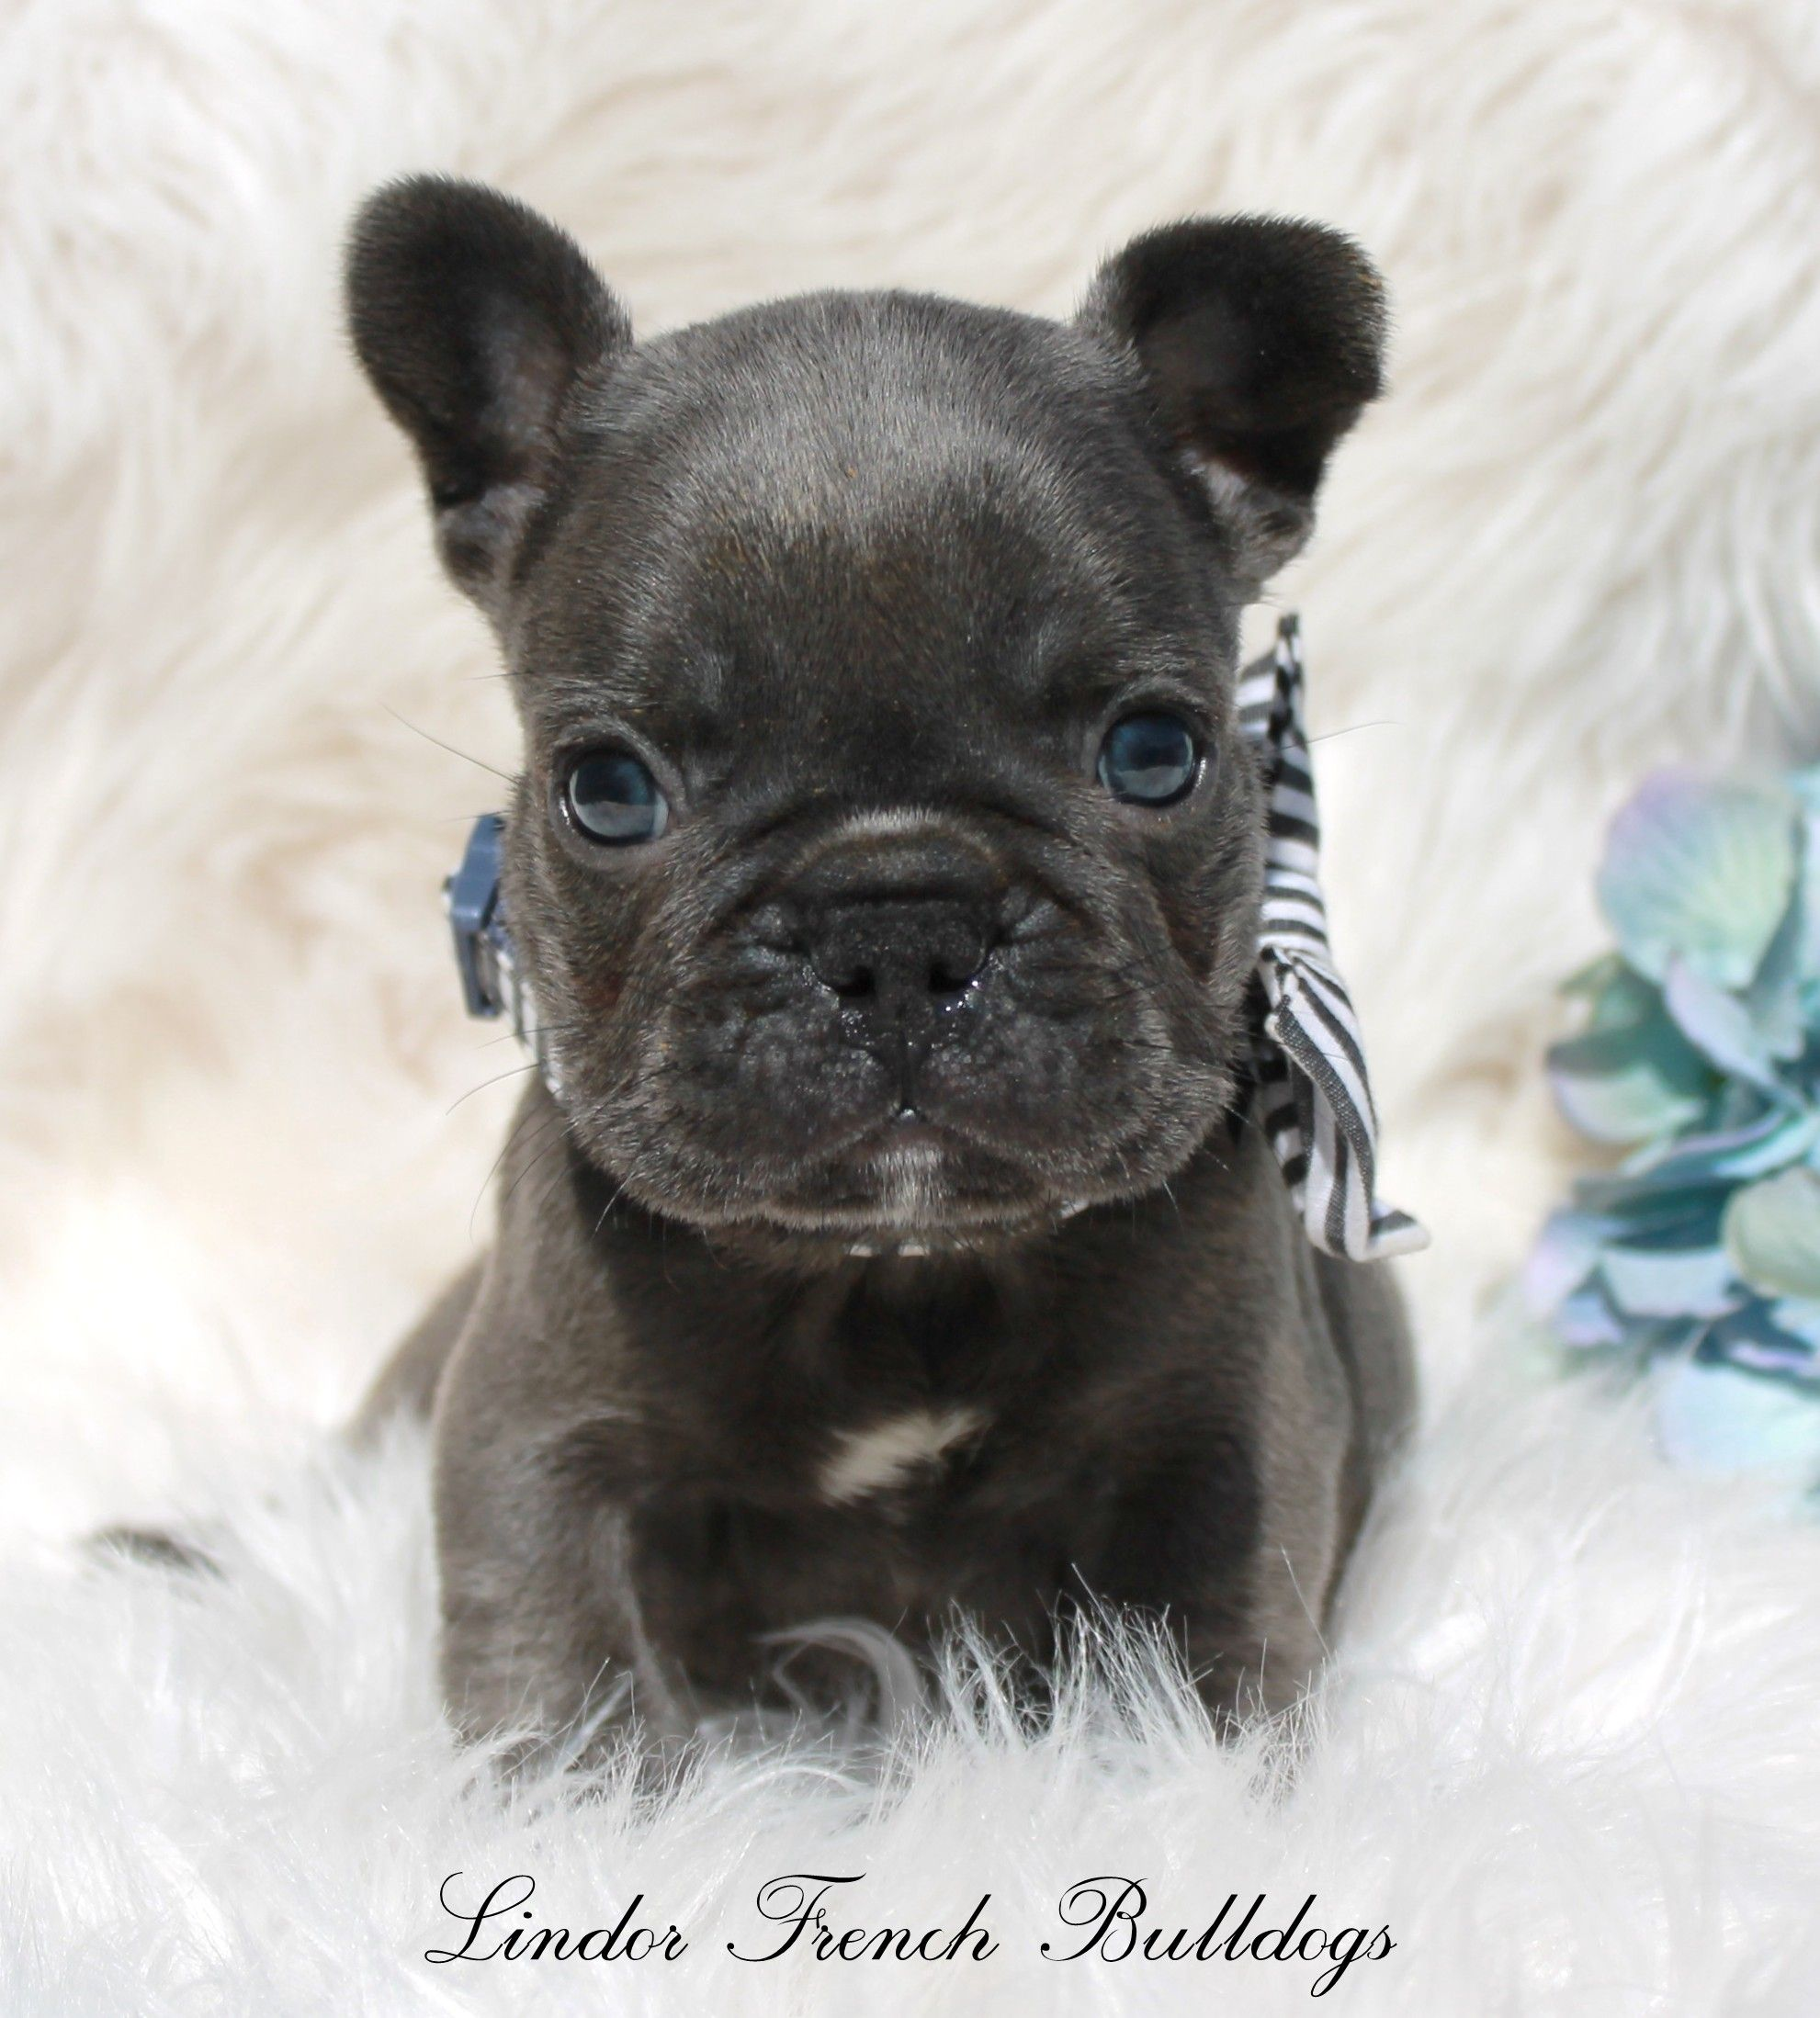 Home Lindor French Bulldogs Frenchies For Sale All Colors French Bulldog Puppies Bulldog Puppies Blue French Bulldog Puppies